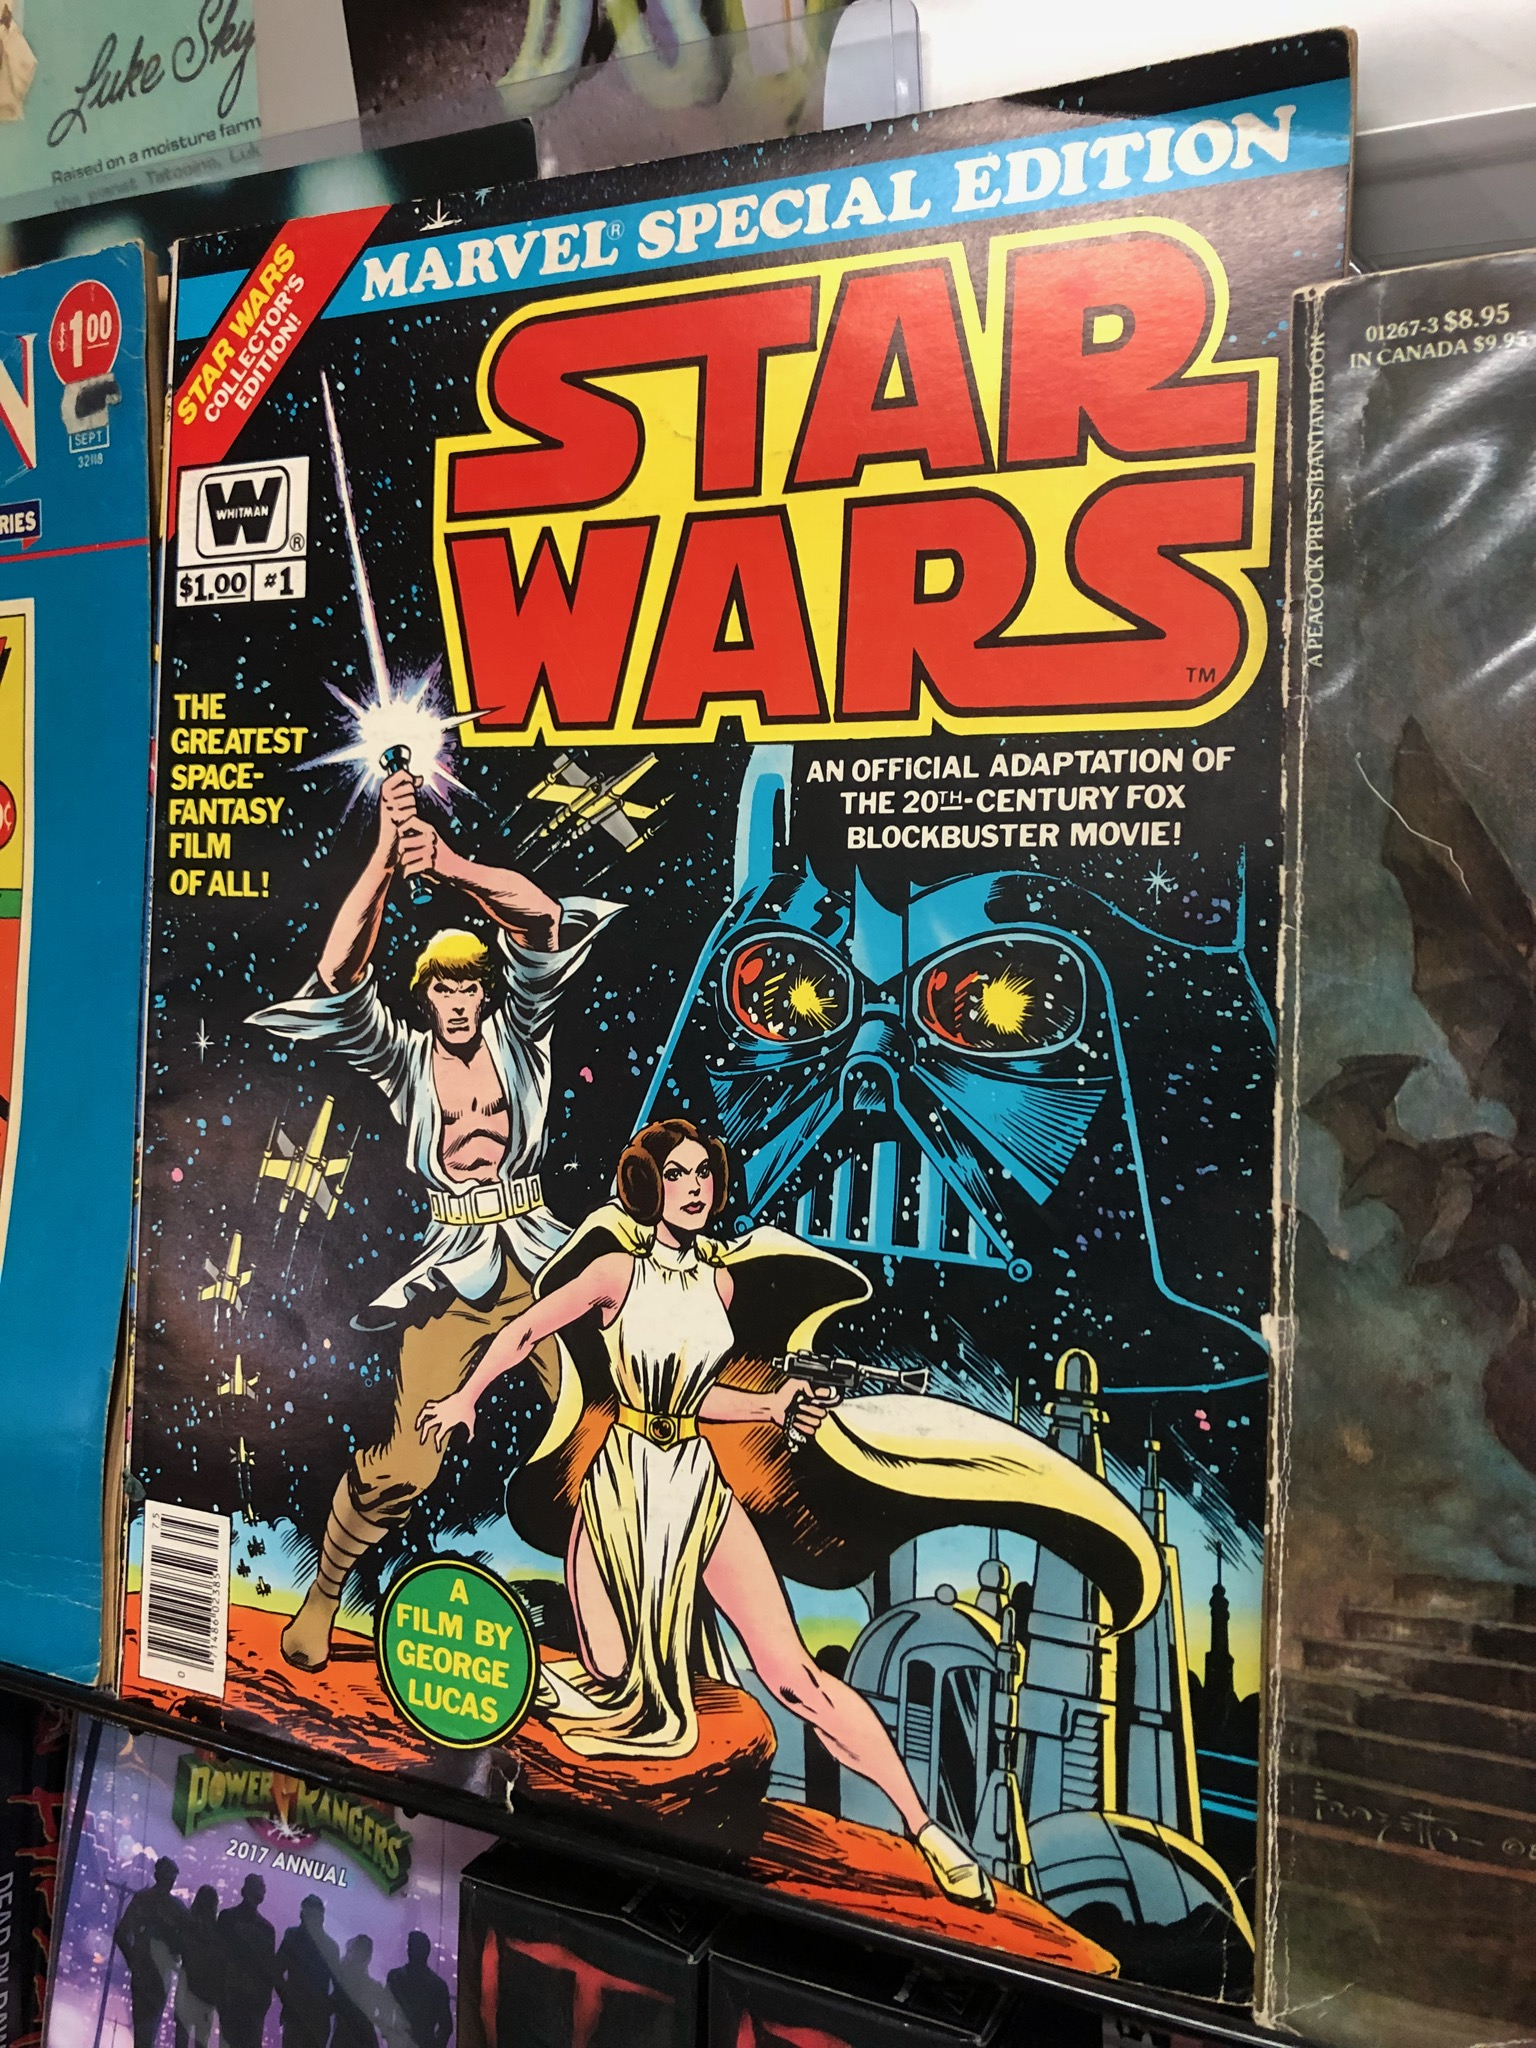 Star Wars back issues